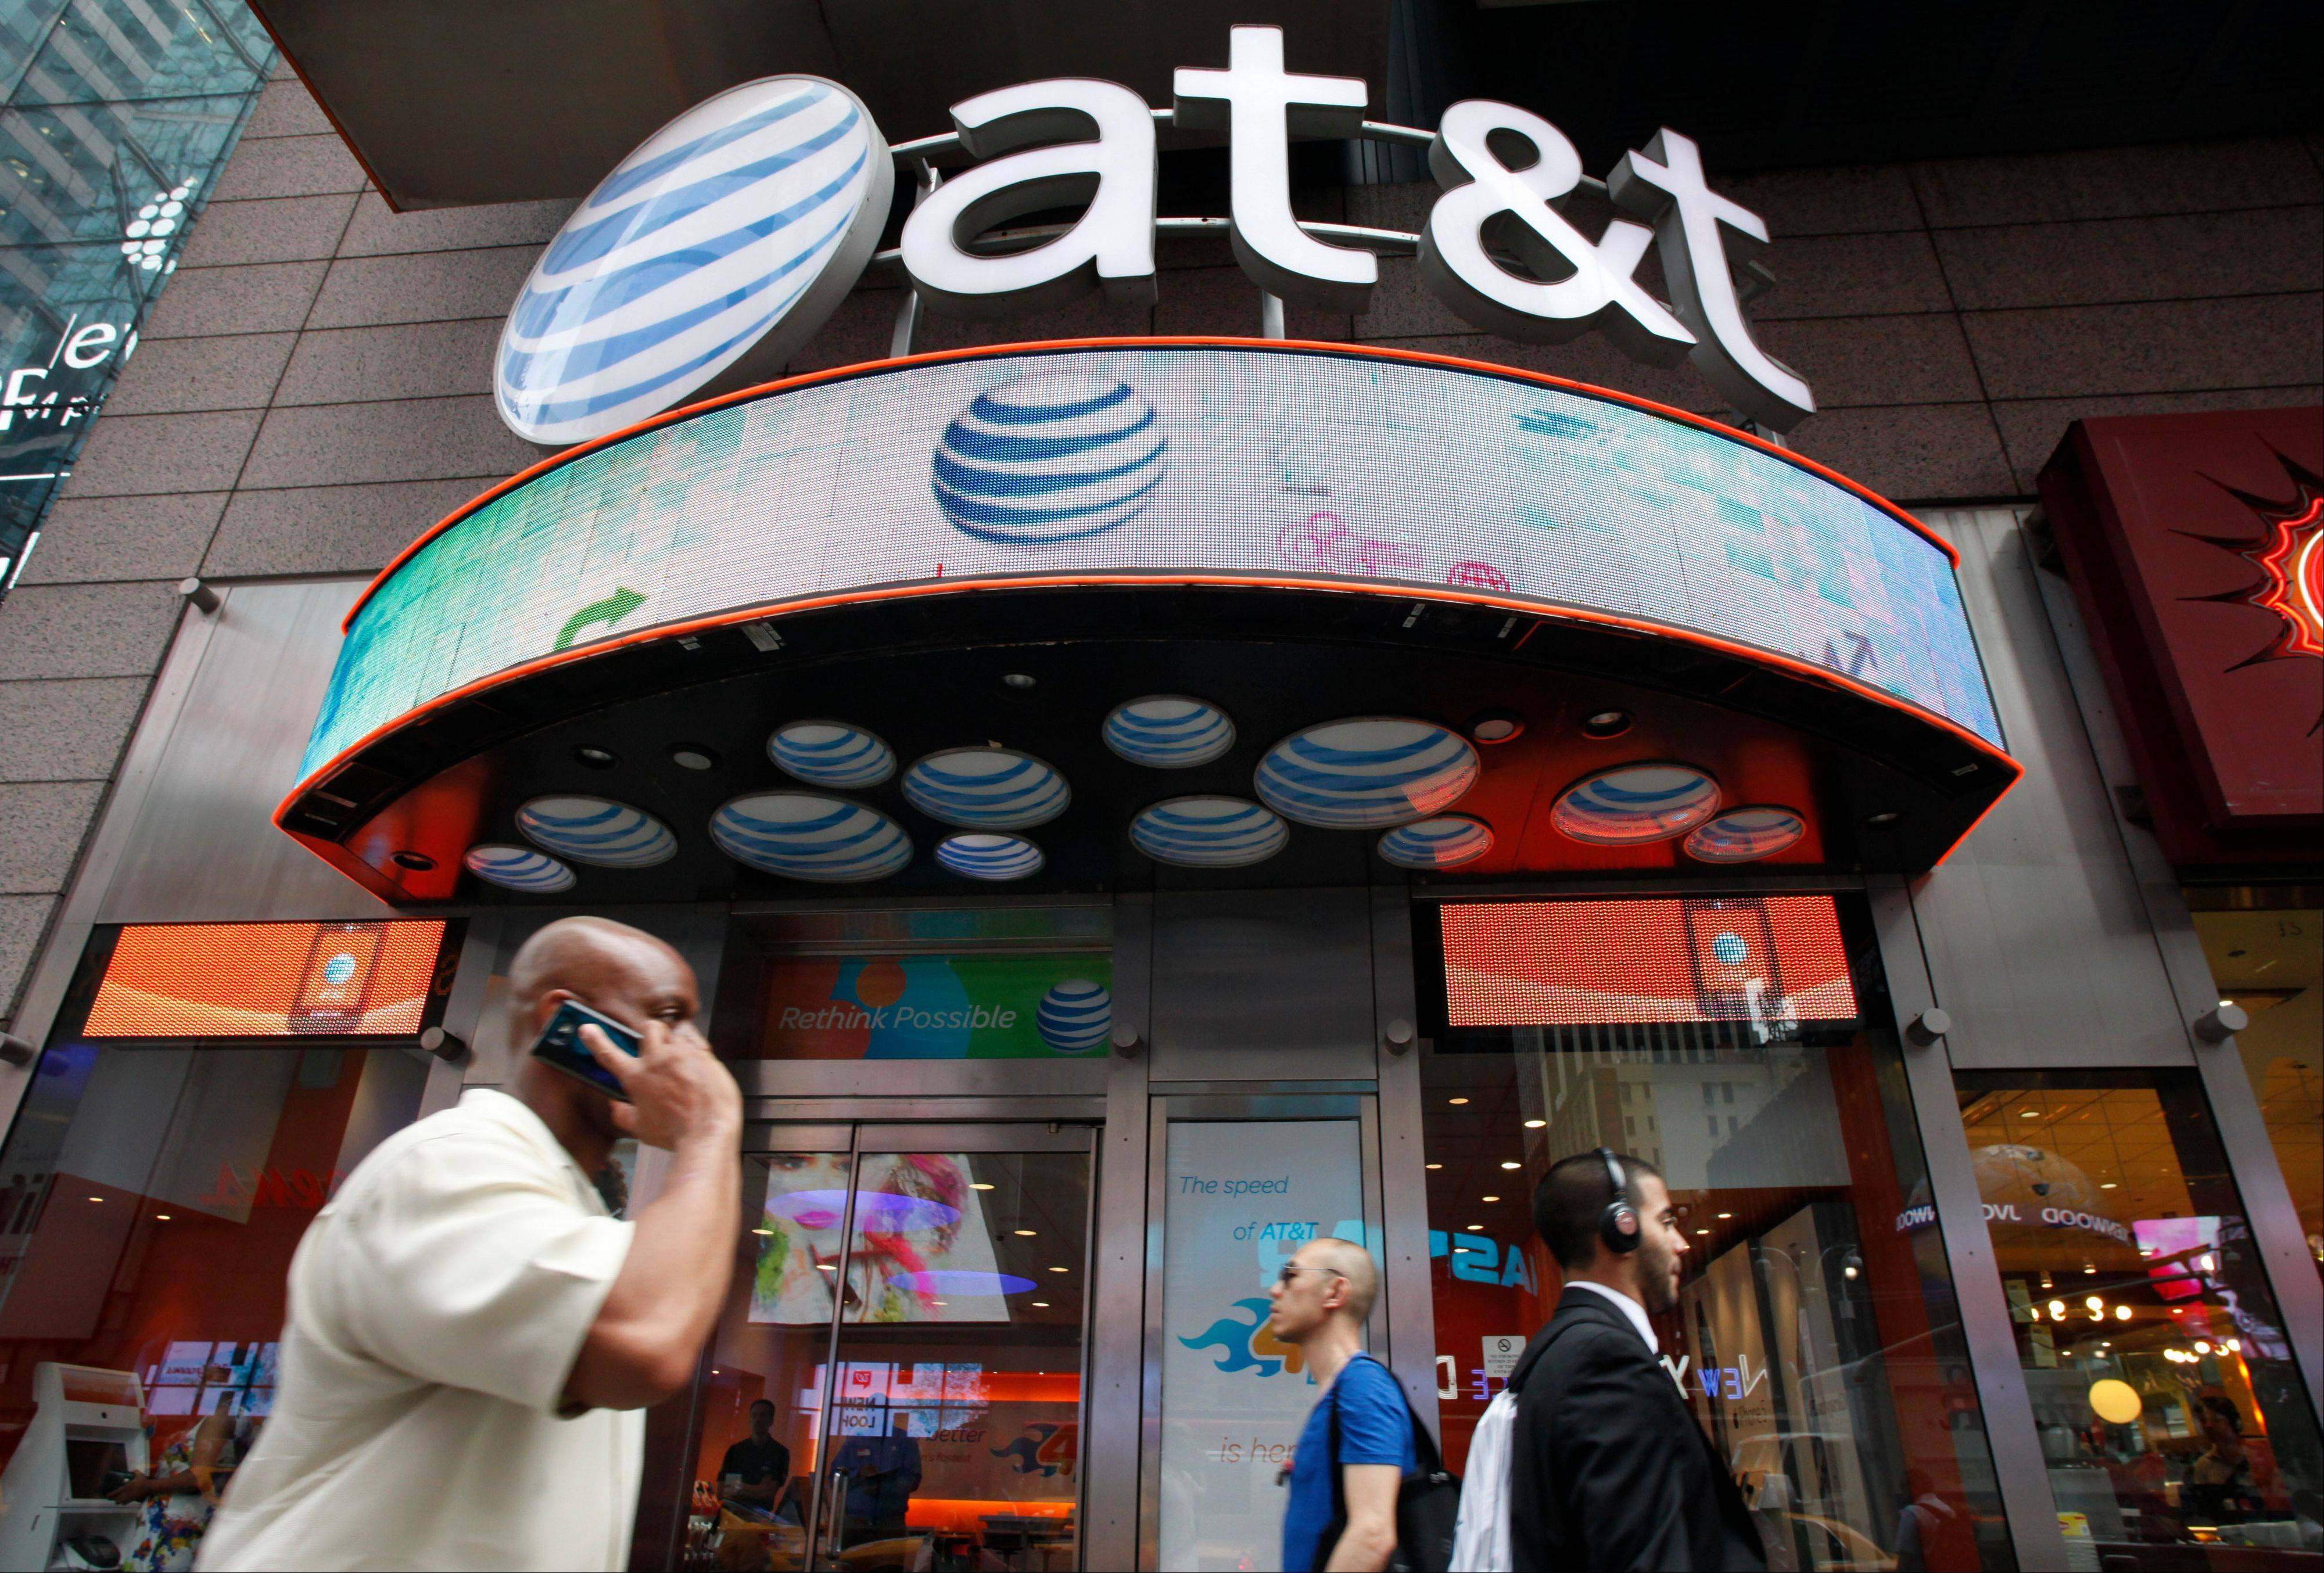 AT&T is posting stronger-than-expected earnings for the final quarter of 2013, helped by higher revenue from mobile and Internet service subscribers.